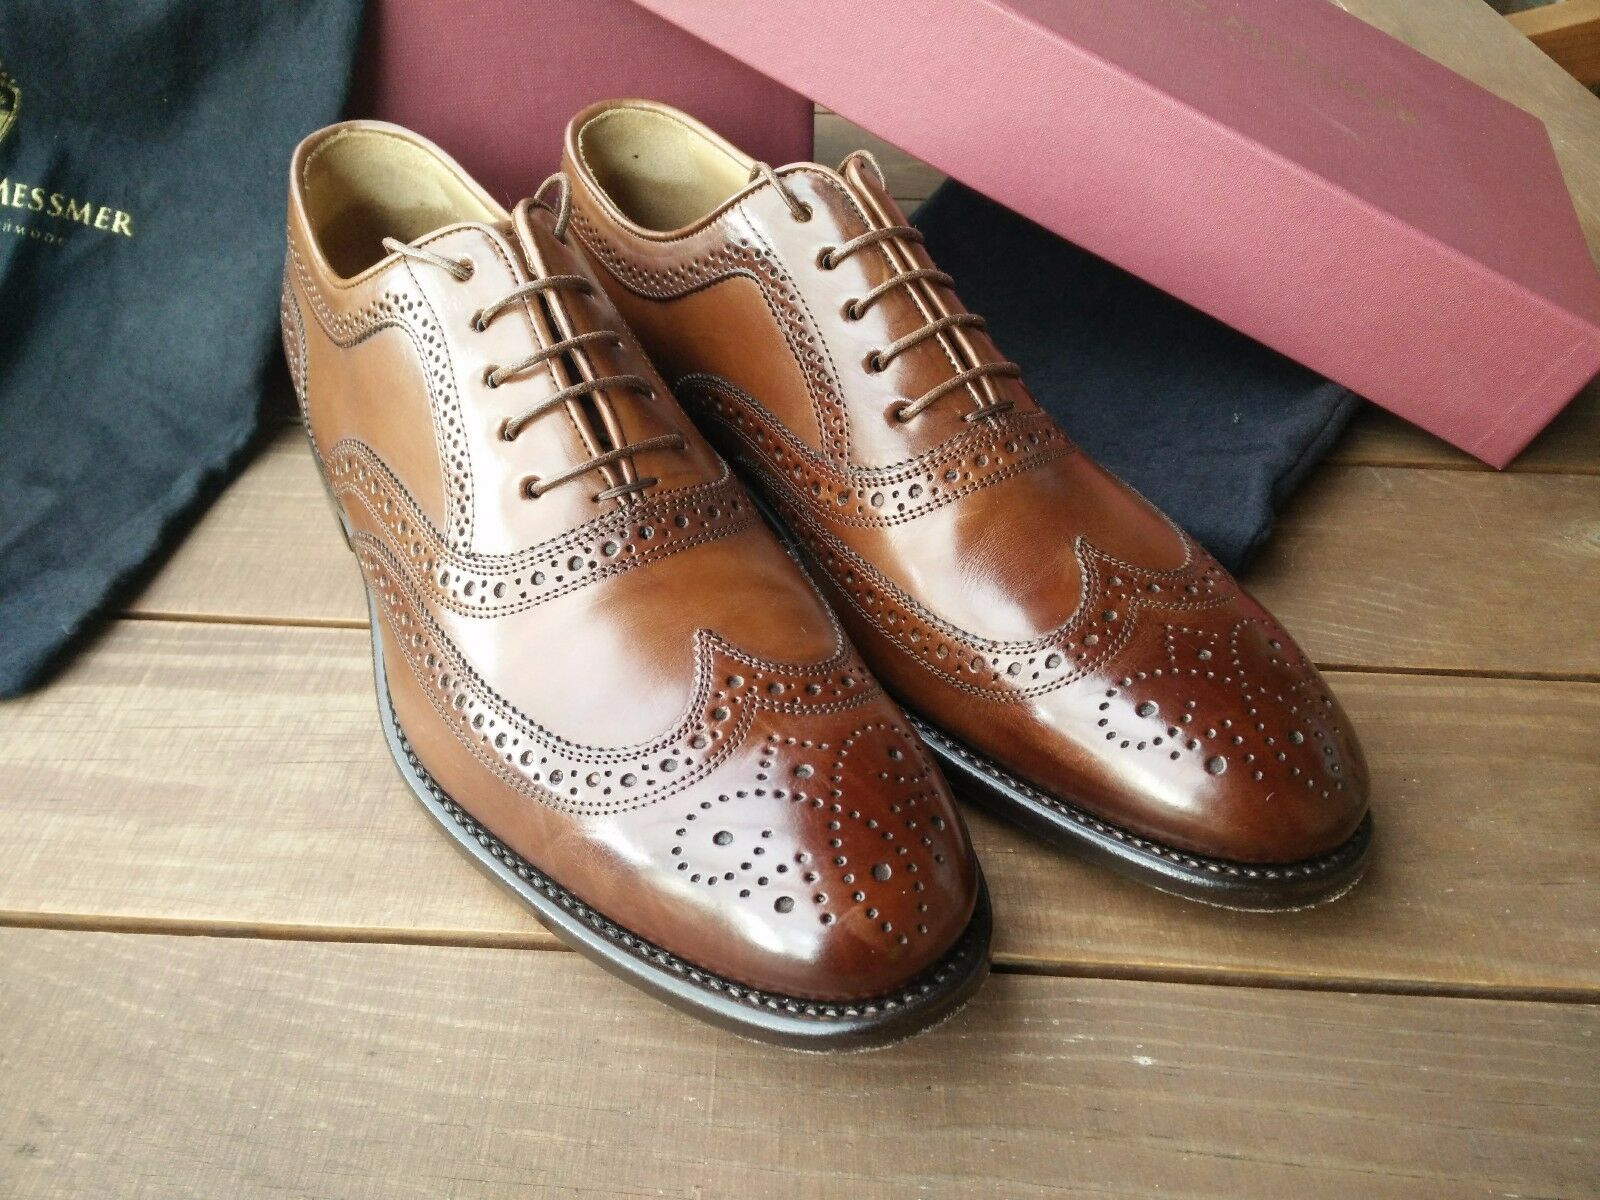 Langer & Messmer Frankfurt Kastanie EUR 41 UK 7,5 Lederschuhe Brogue Oxford    | Neuartiges Design